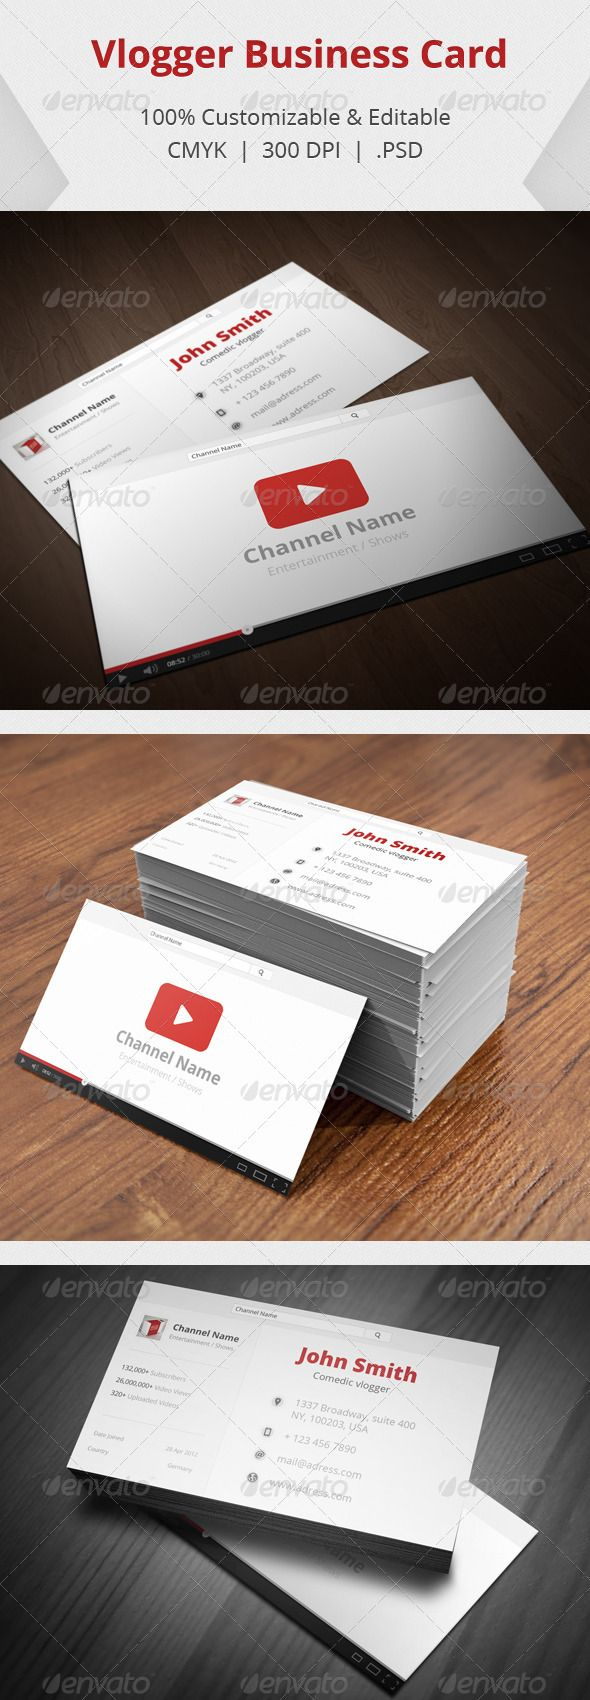 98 best business card s e l e c t i o n images on pinterest vlogger business card magicingreecefo Image collections